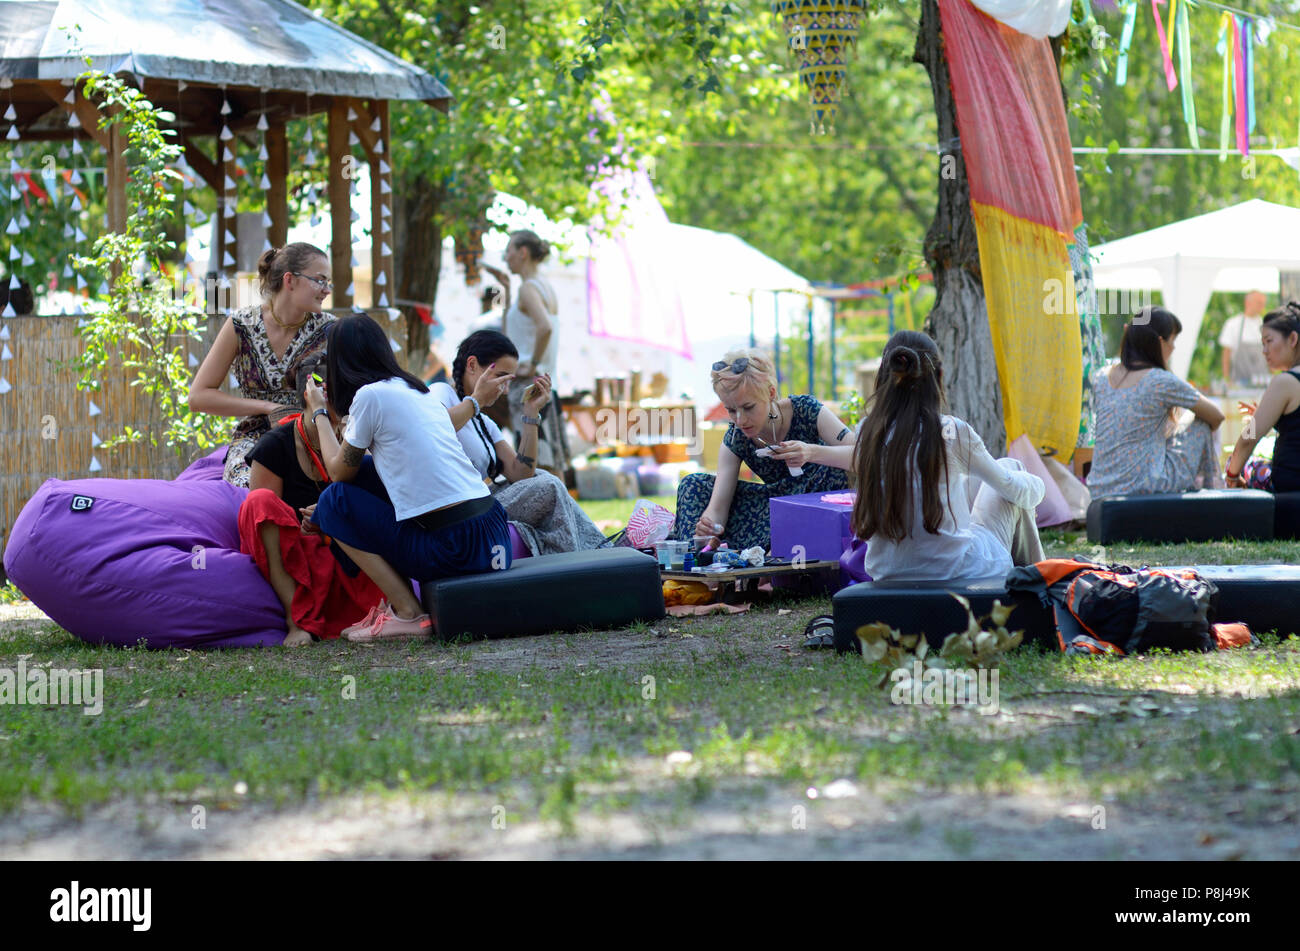 """Face art, tattooing. Festival of Yoga and Vedic Culture """"Vedalife-2017, Island"""". August 7, 2017. Kiev, Ukraine. - Stock Image"""